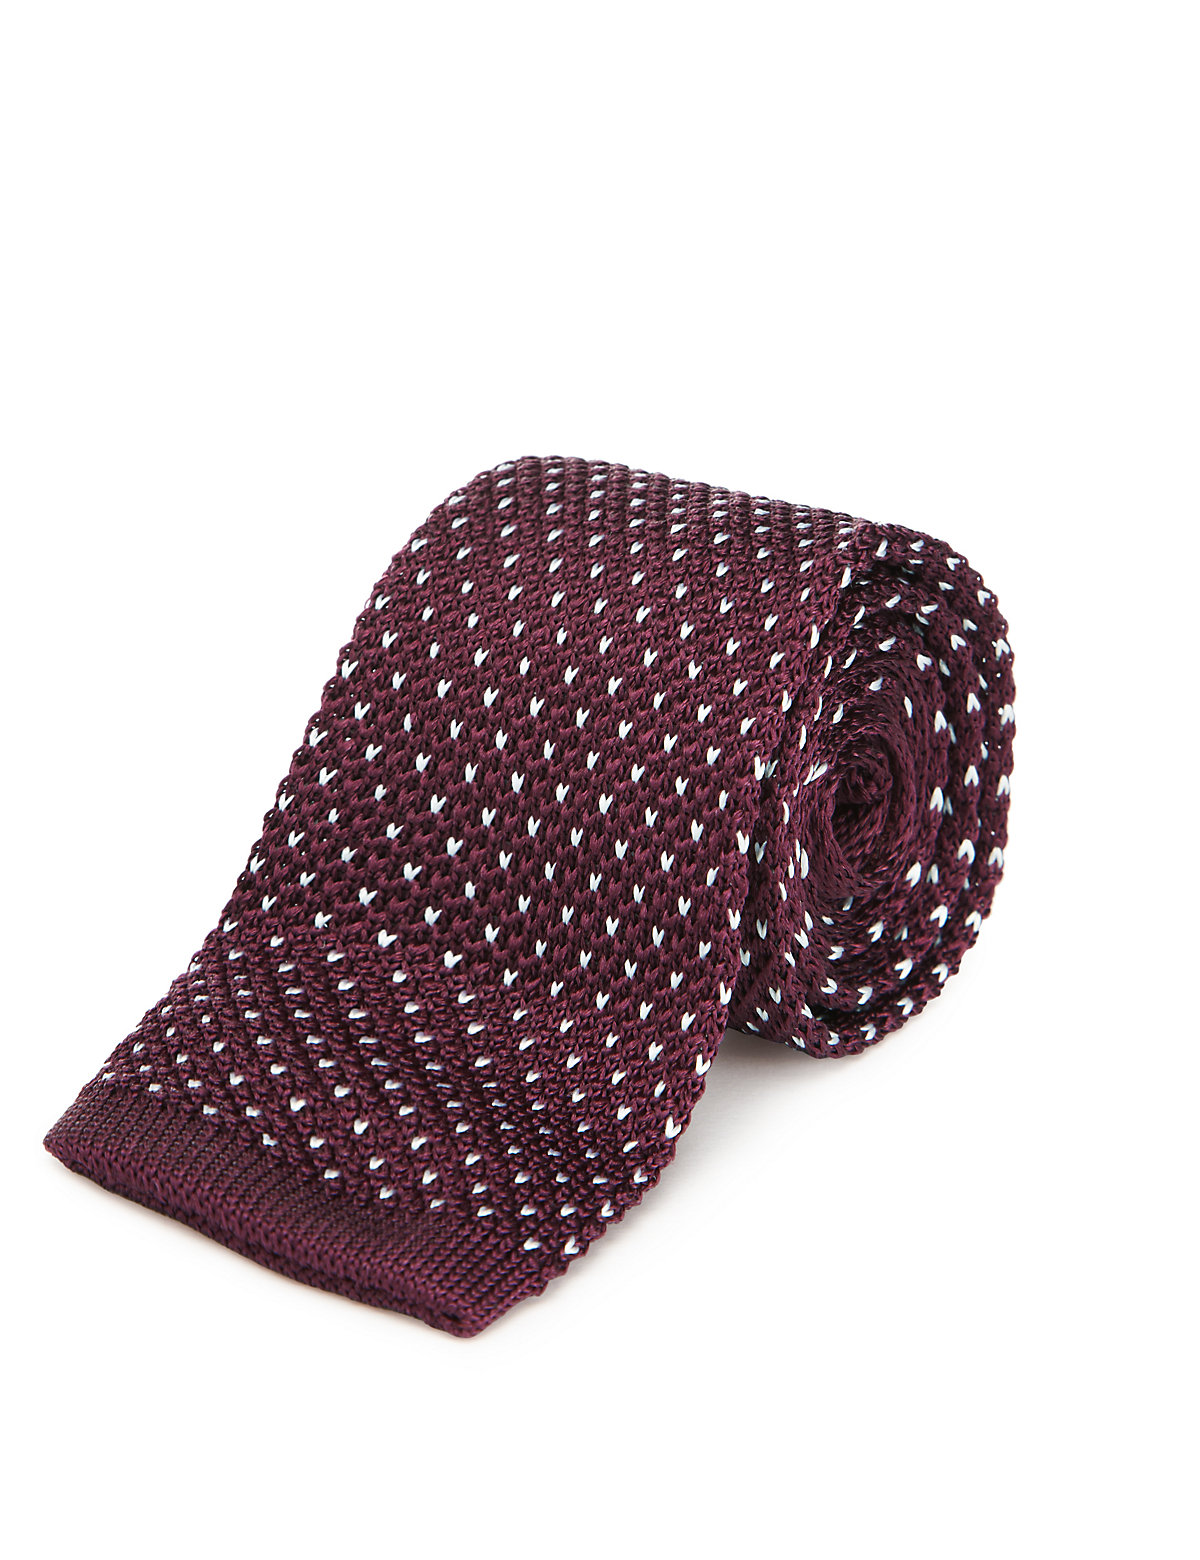 Autograph Pure Silk Knitted Tie $25.00 AT vintagedancer.com